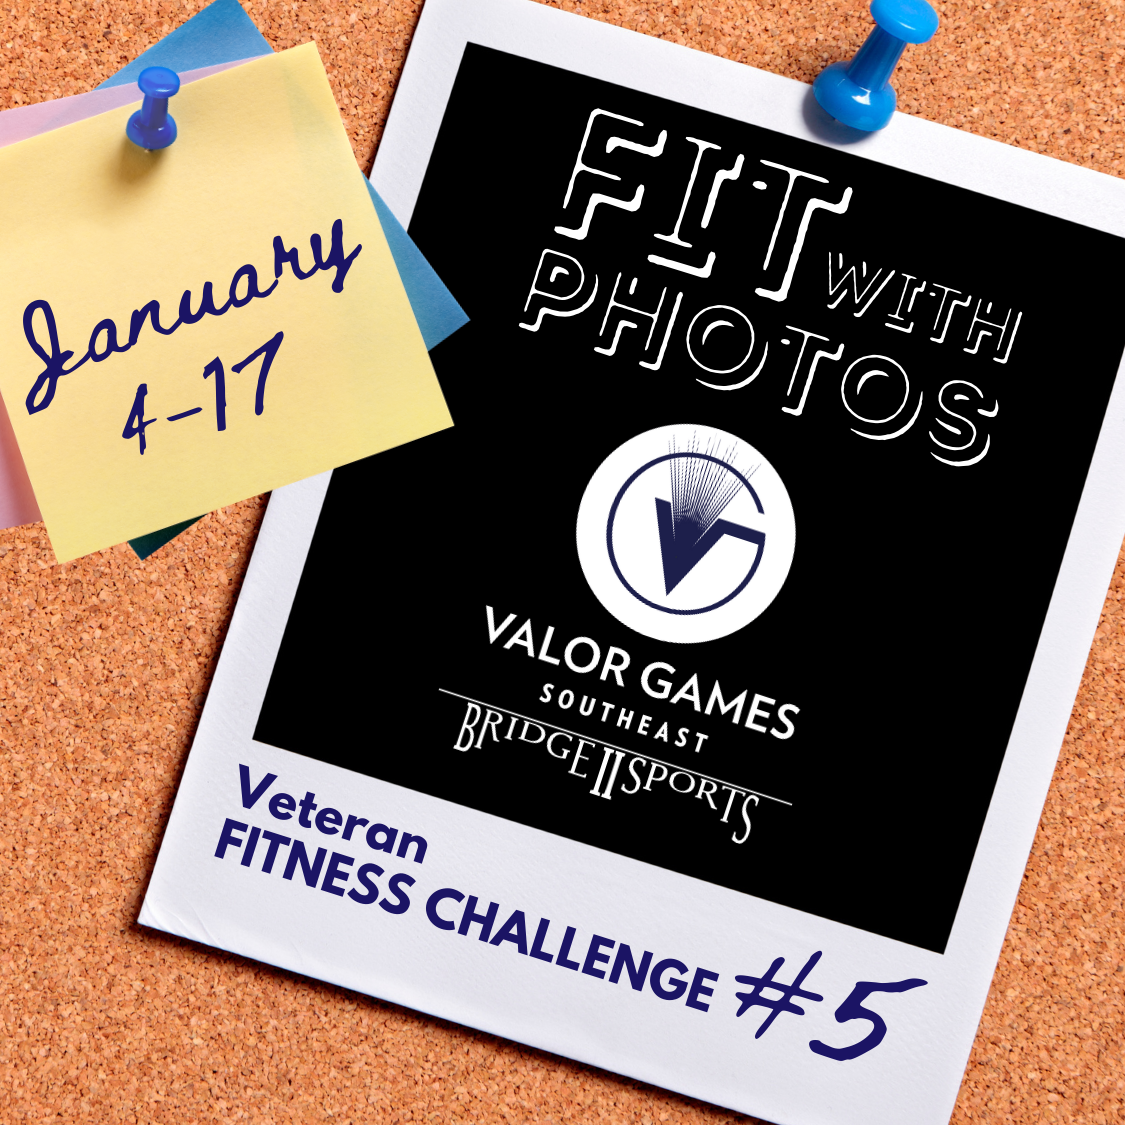 """graphic with cork board and a post it note and polaroid photo pinned to it. Text reads """"Fit with Photos"""" Veteran Fitness Challenge number 5 January 4 to 17. Valor Games Southeast Bridge II Sports logo."""